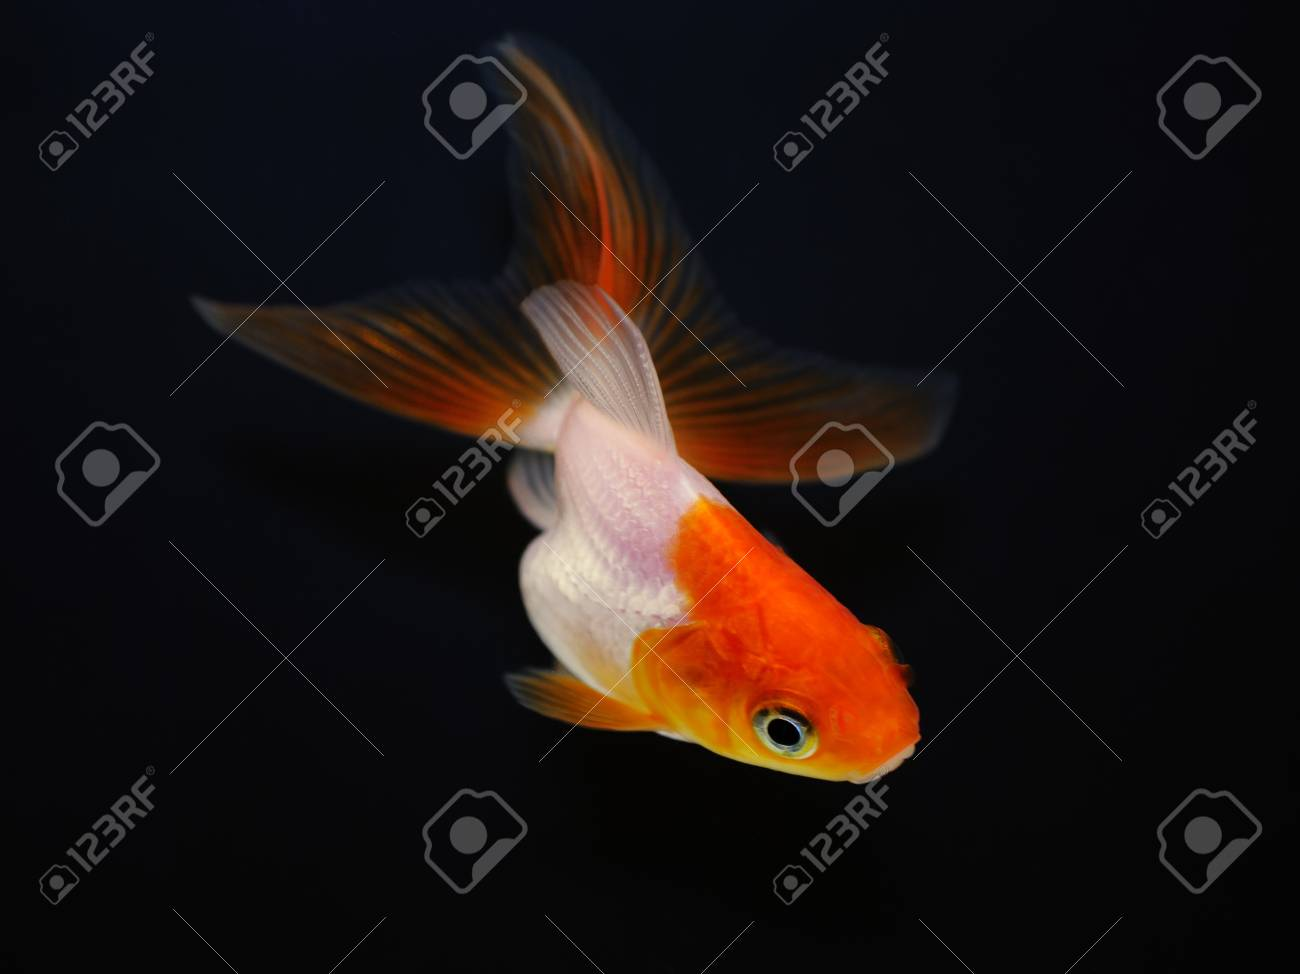 Goldfish on black background Stock Photo - 14675373